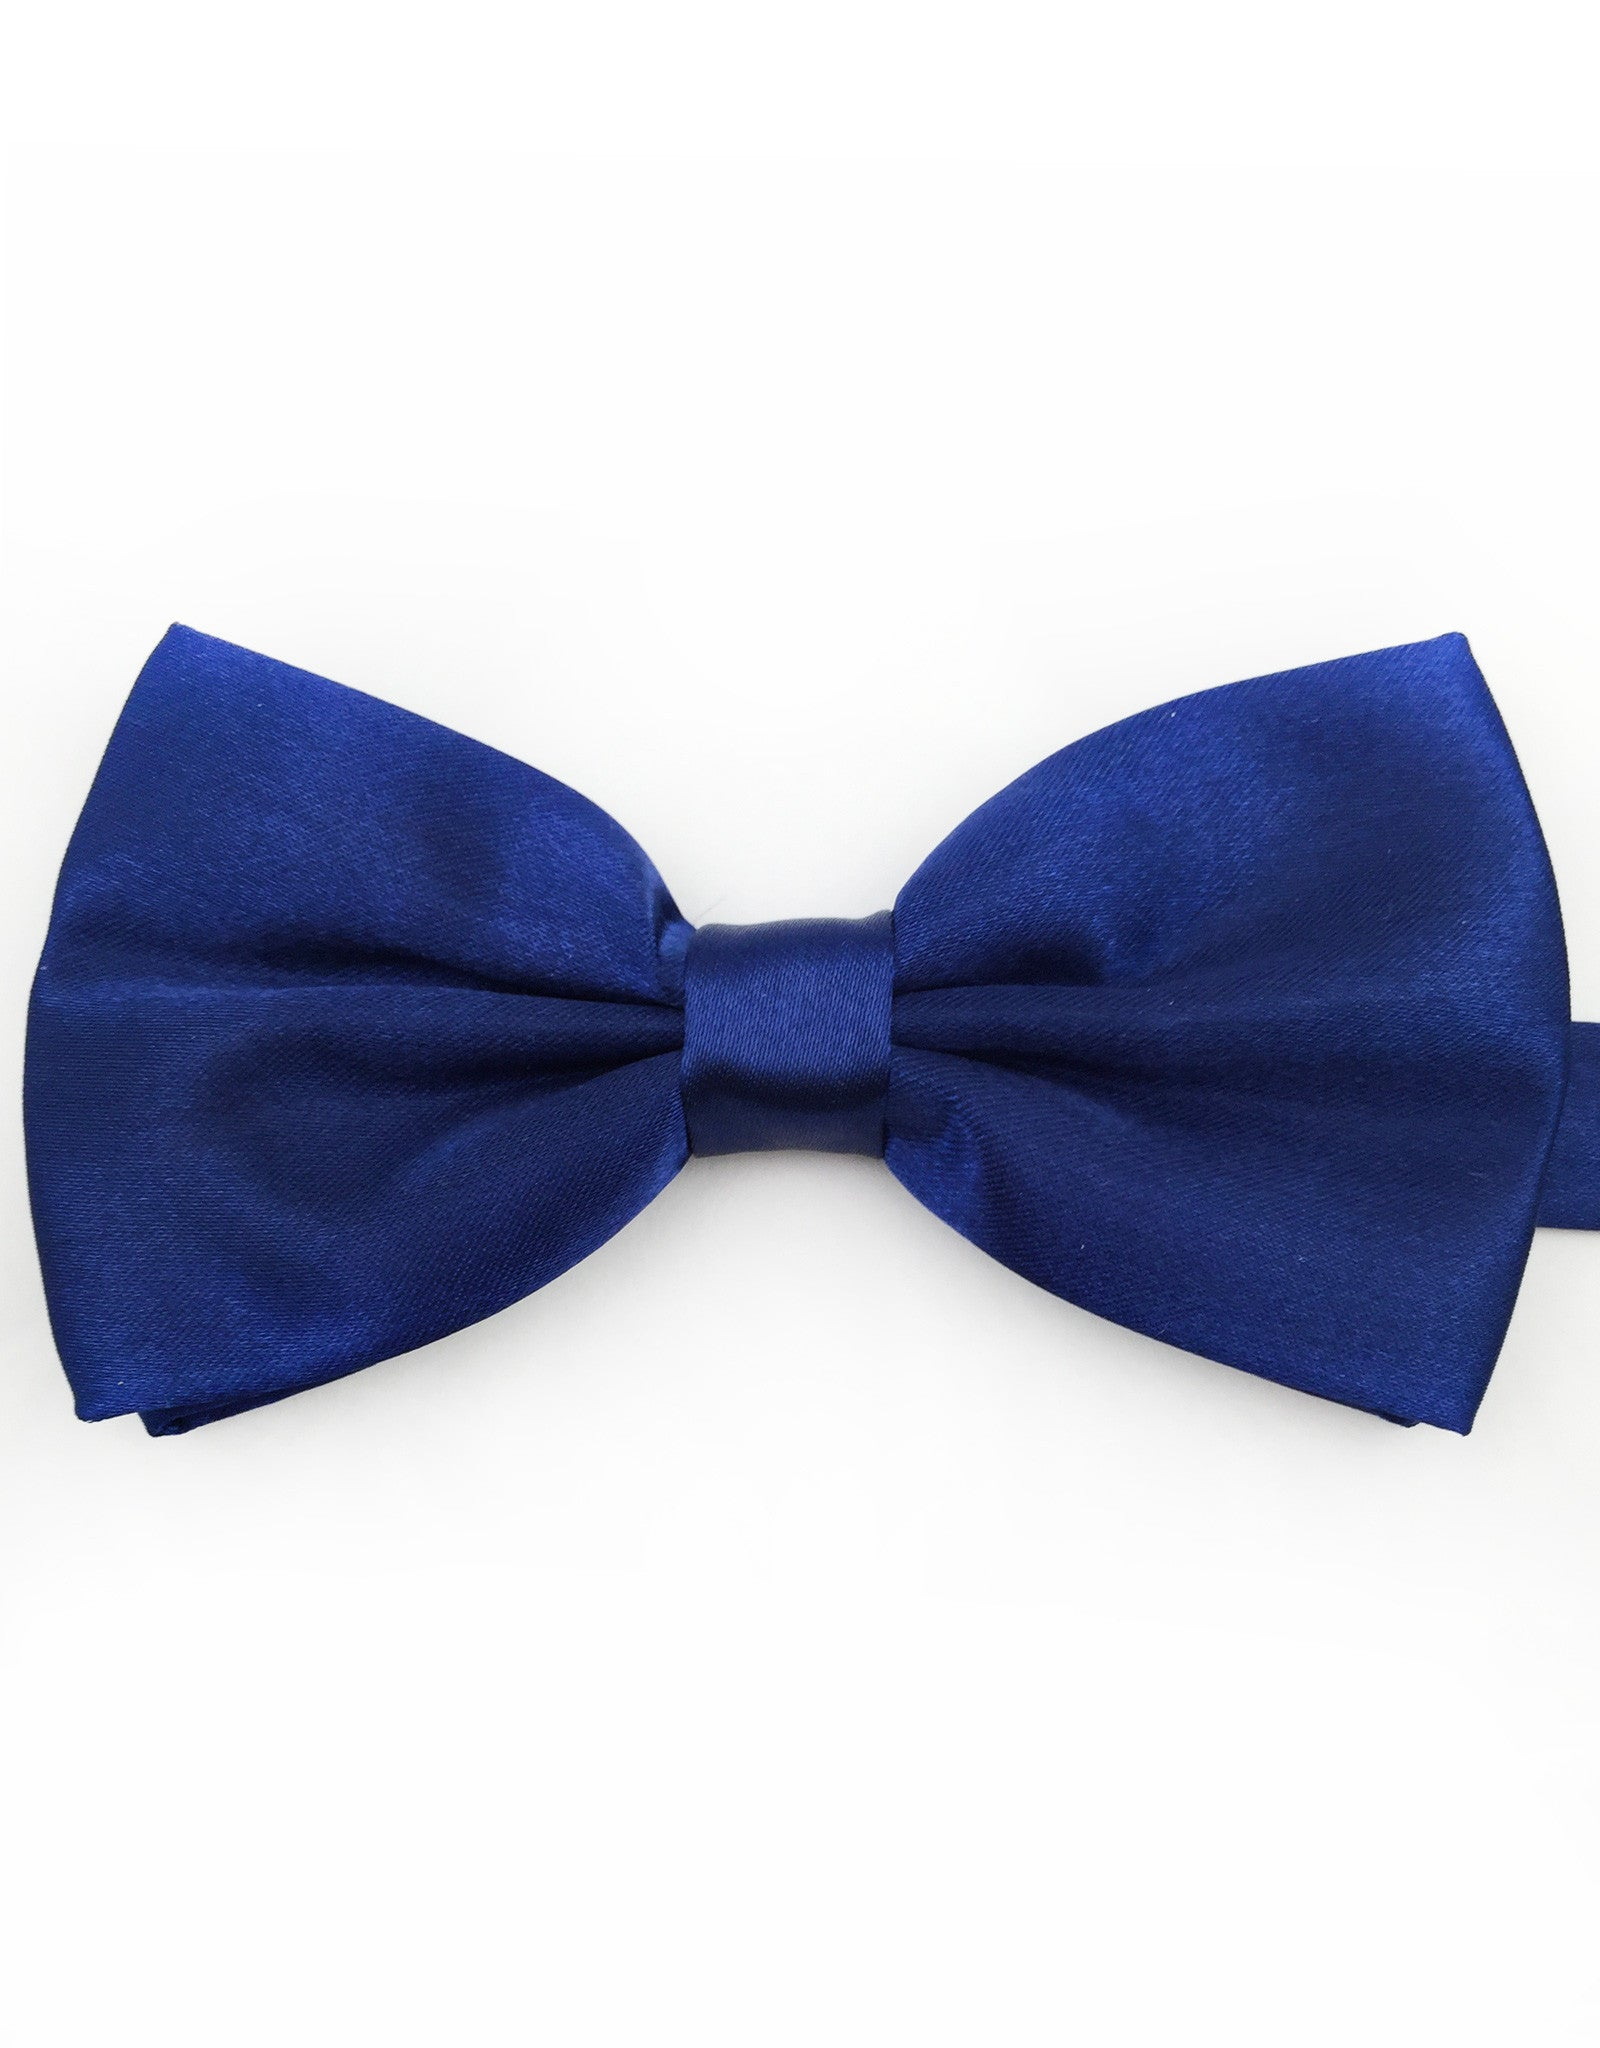 Navy Blue Satin Bowtie